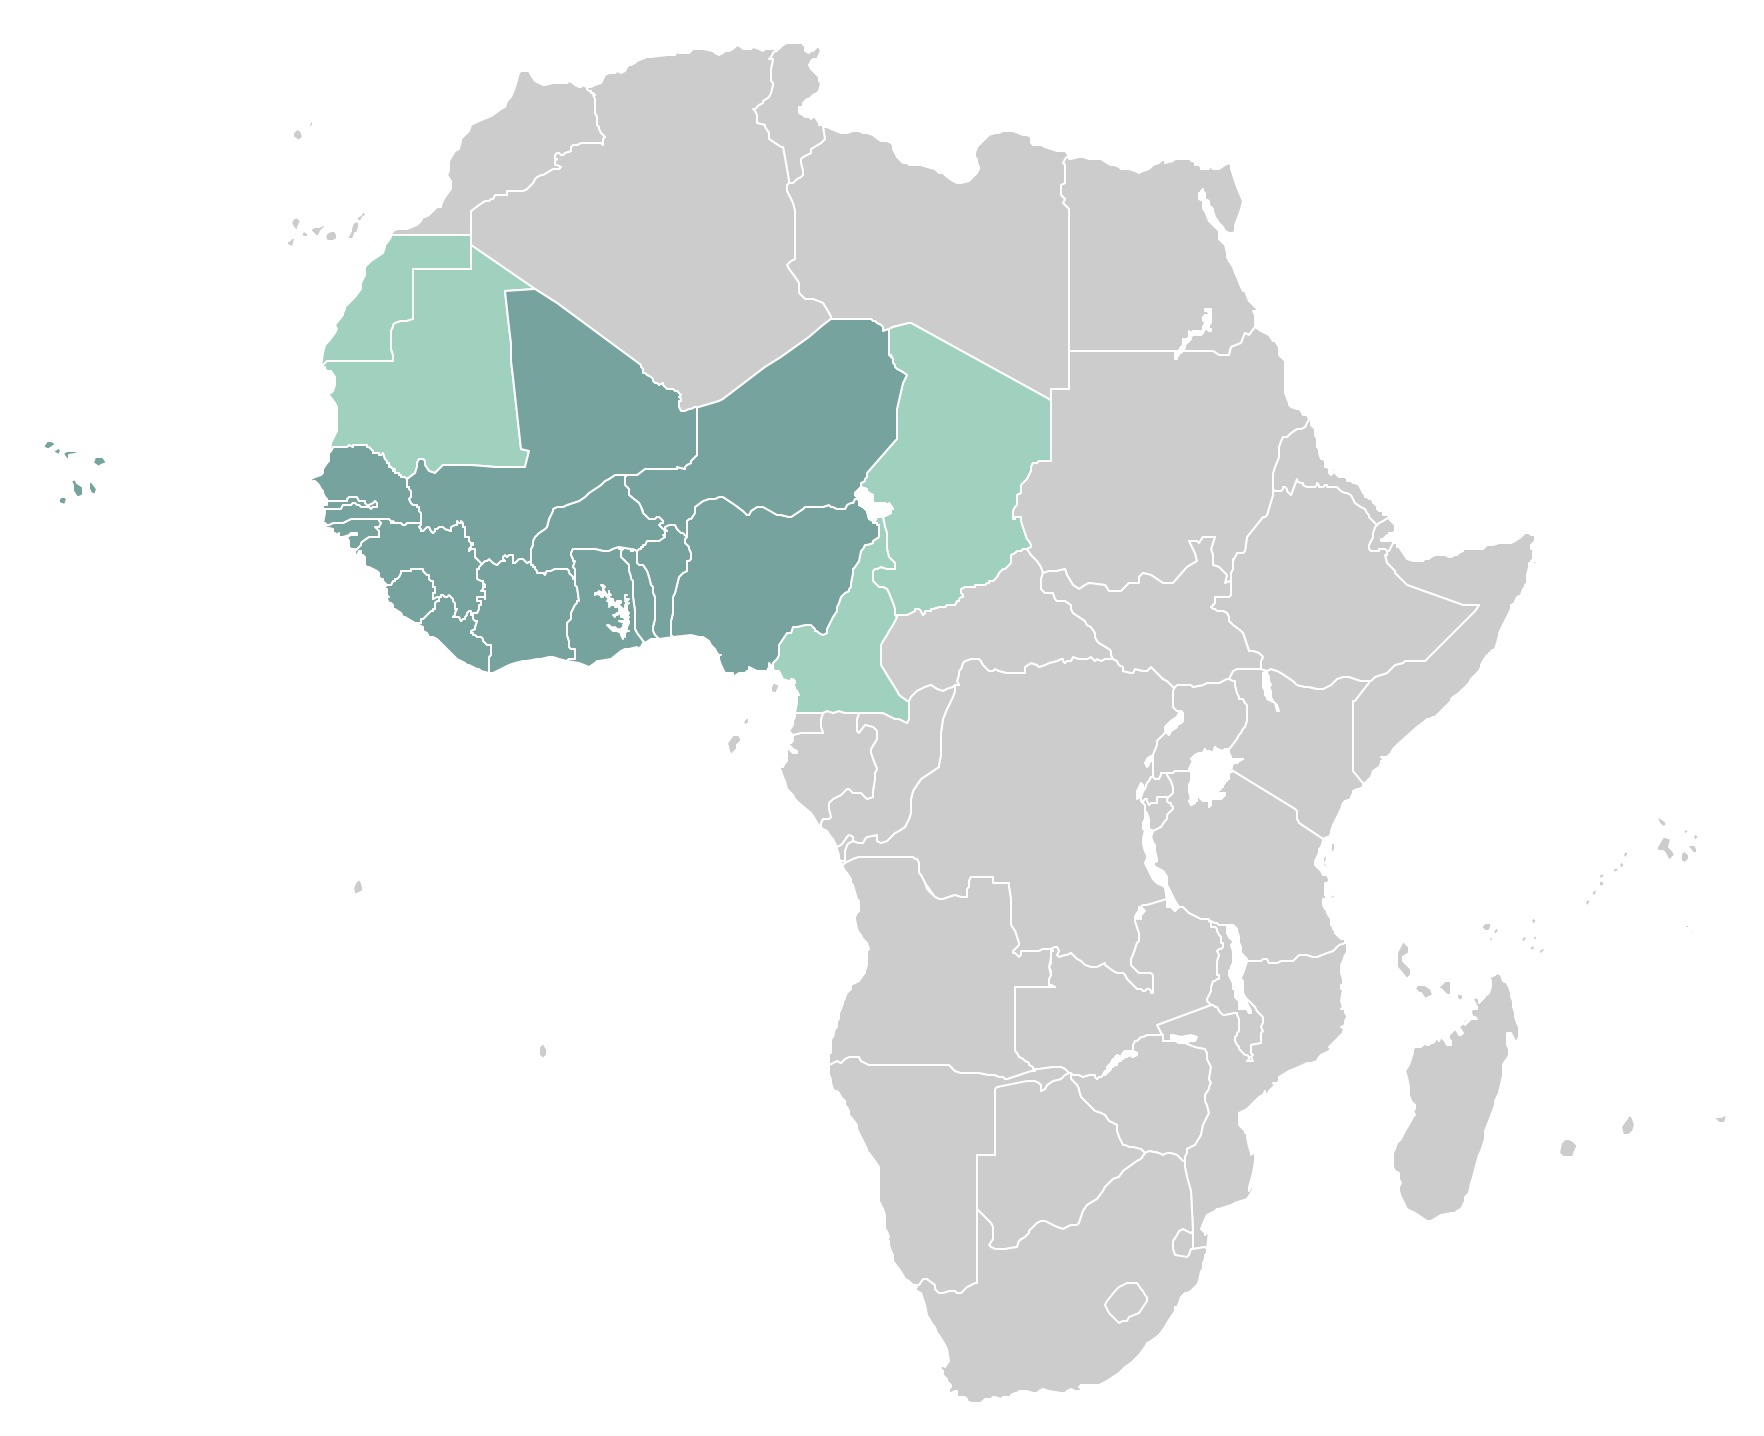 West Africa countries